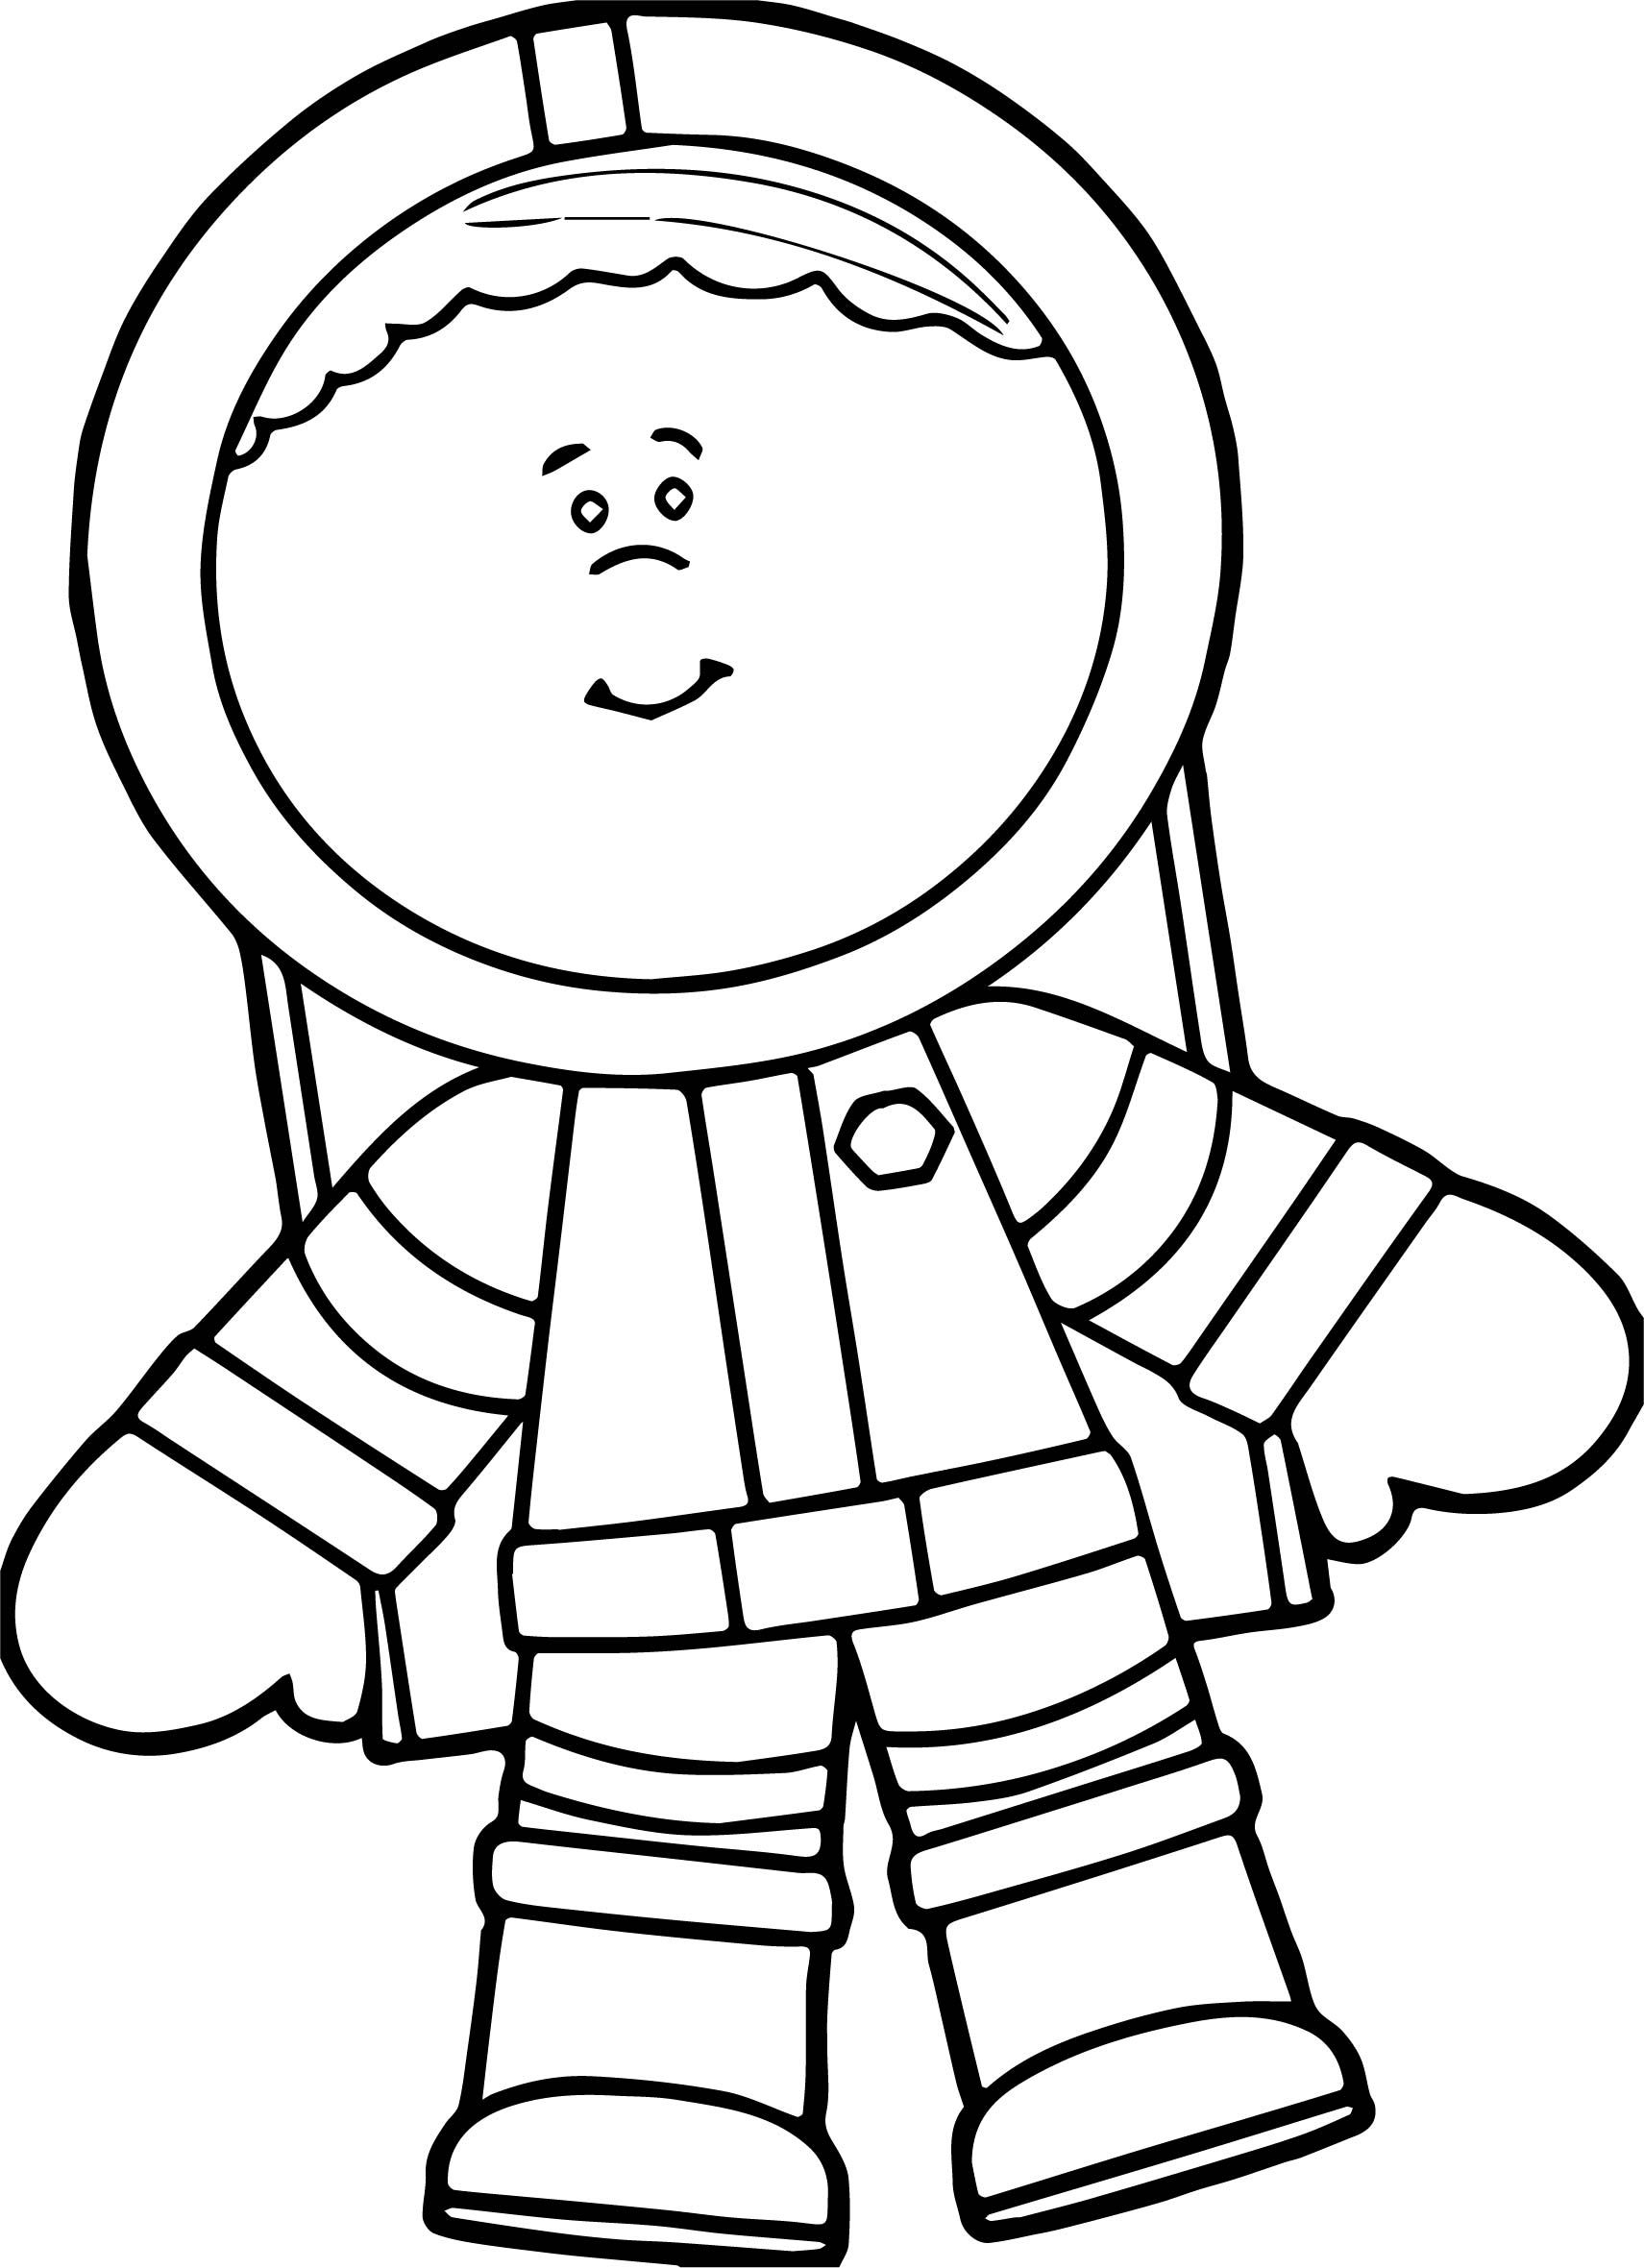 Cool Cute Astronaut Boy Coloring Page Coloring Pages For Boys